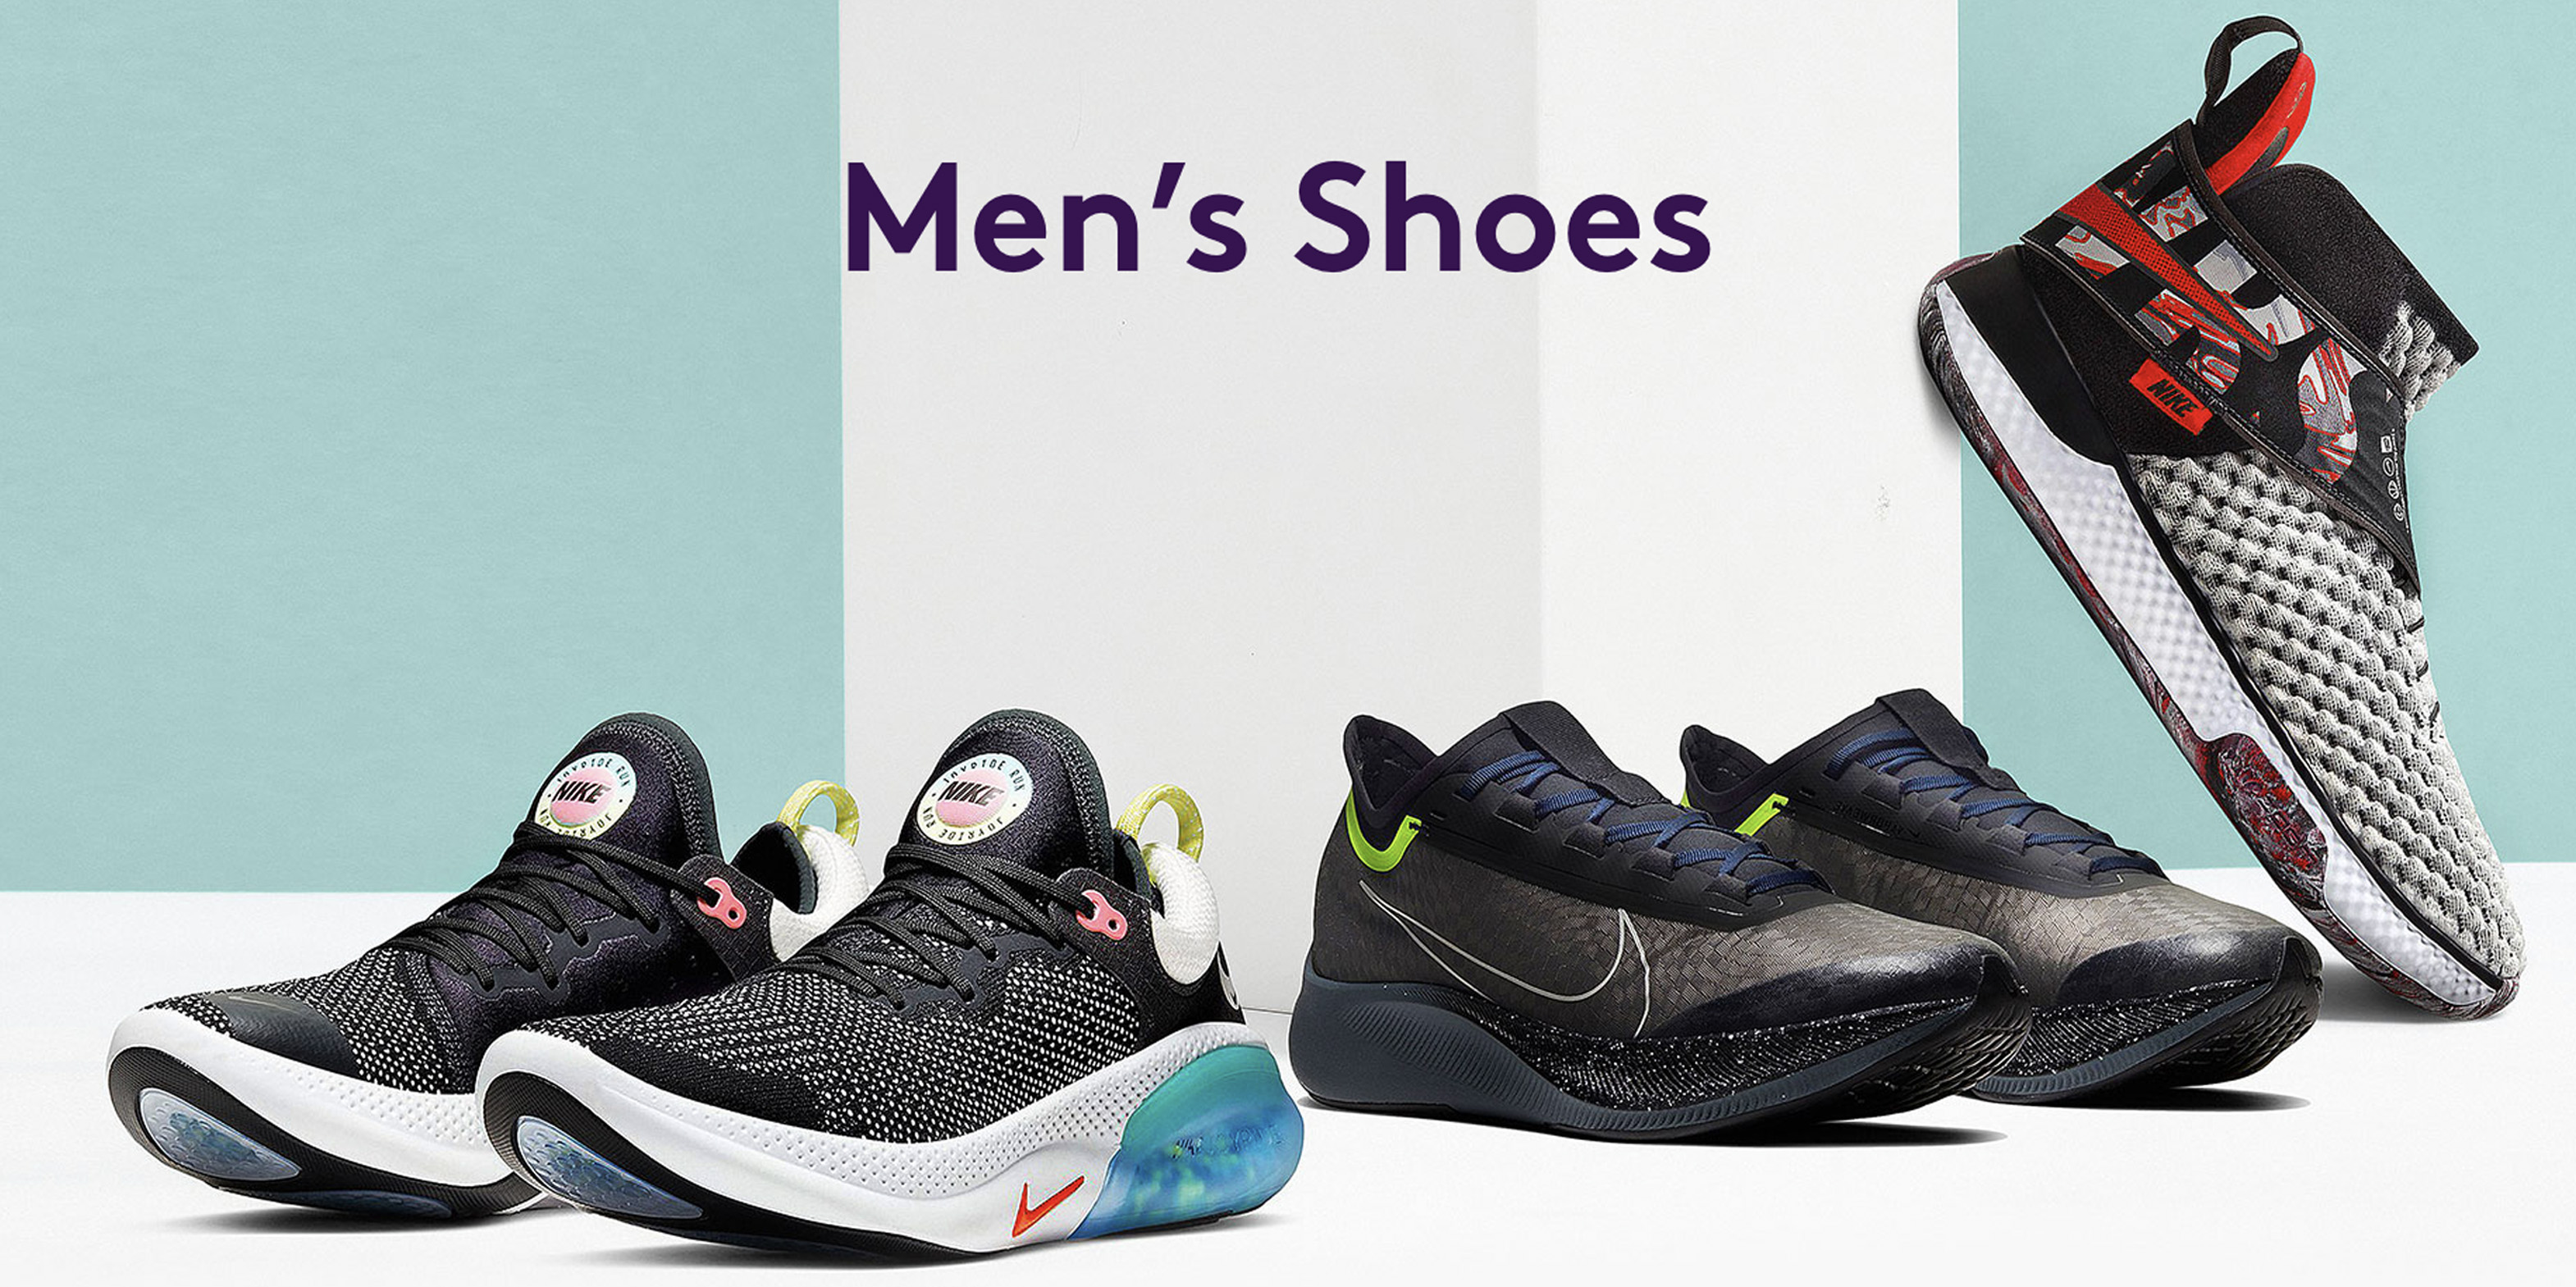 Nordstrom Rack's Nike Sale offers up to